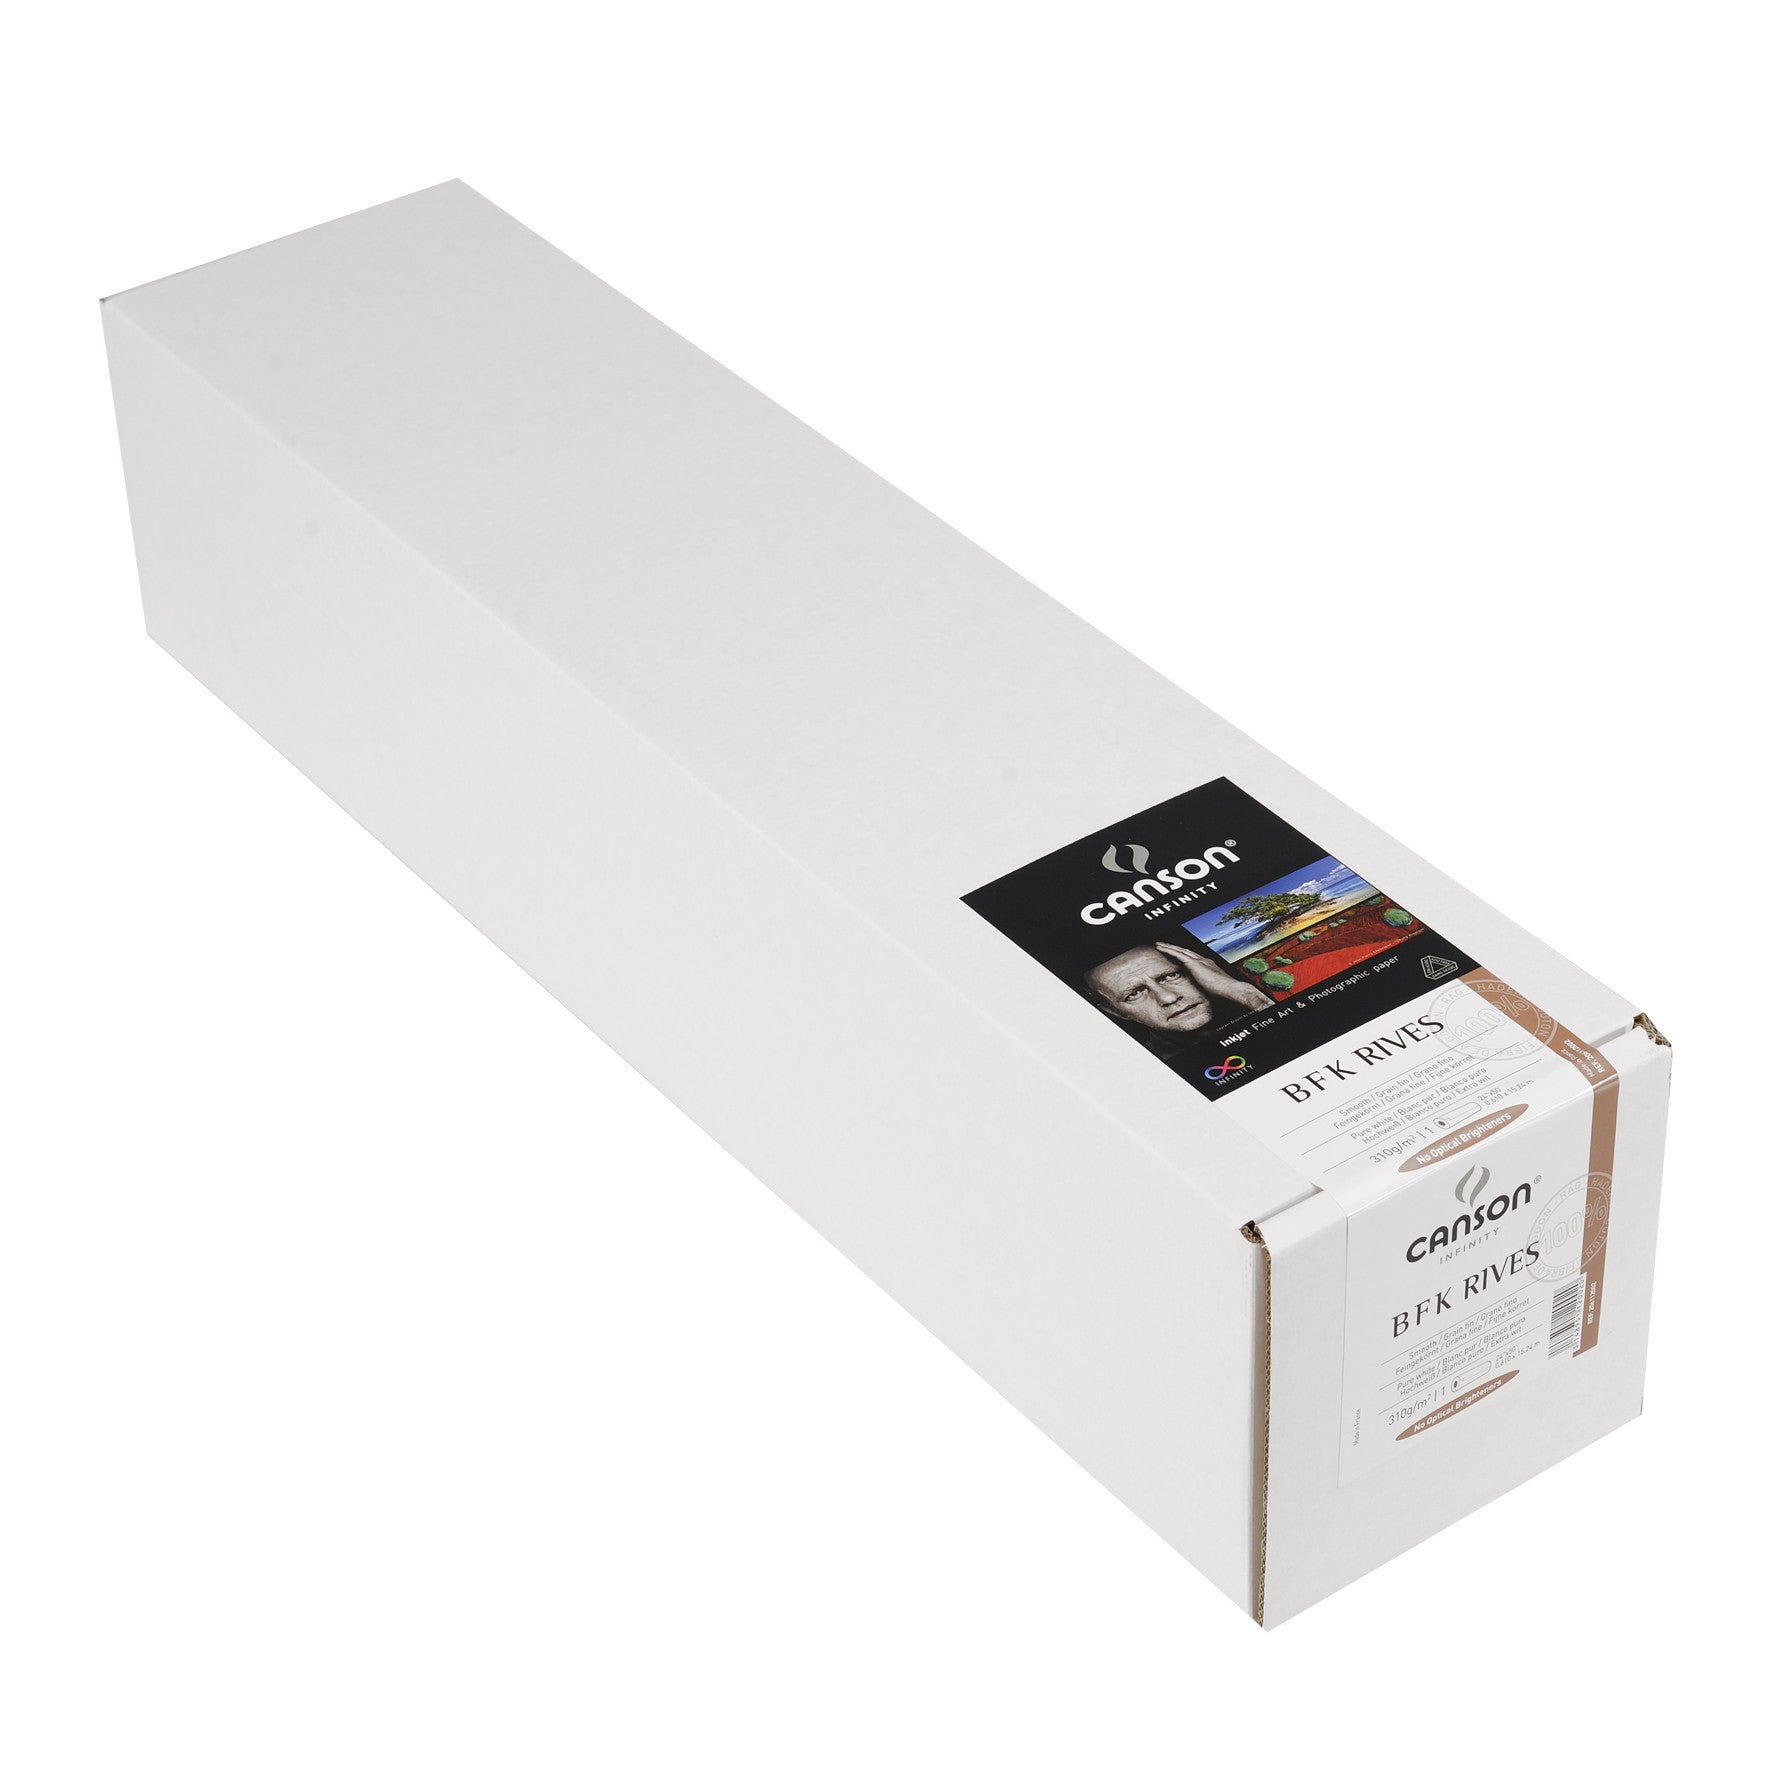 "Canson Infinity PrintMaKing Rag (BFK Rives) - 310gsm - 24""x50' roll - Wall Your Photos"